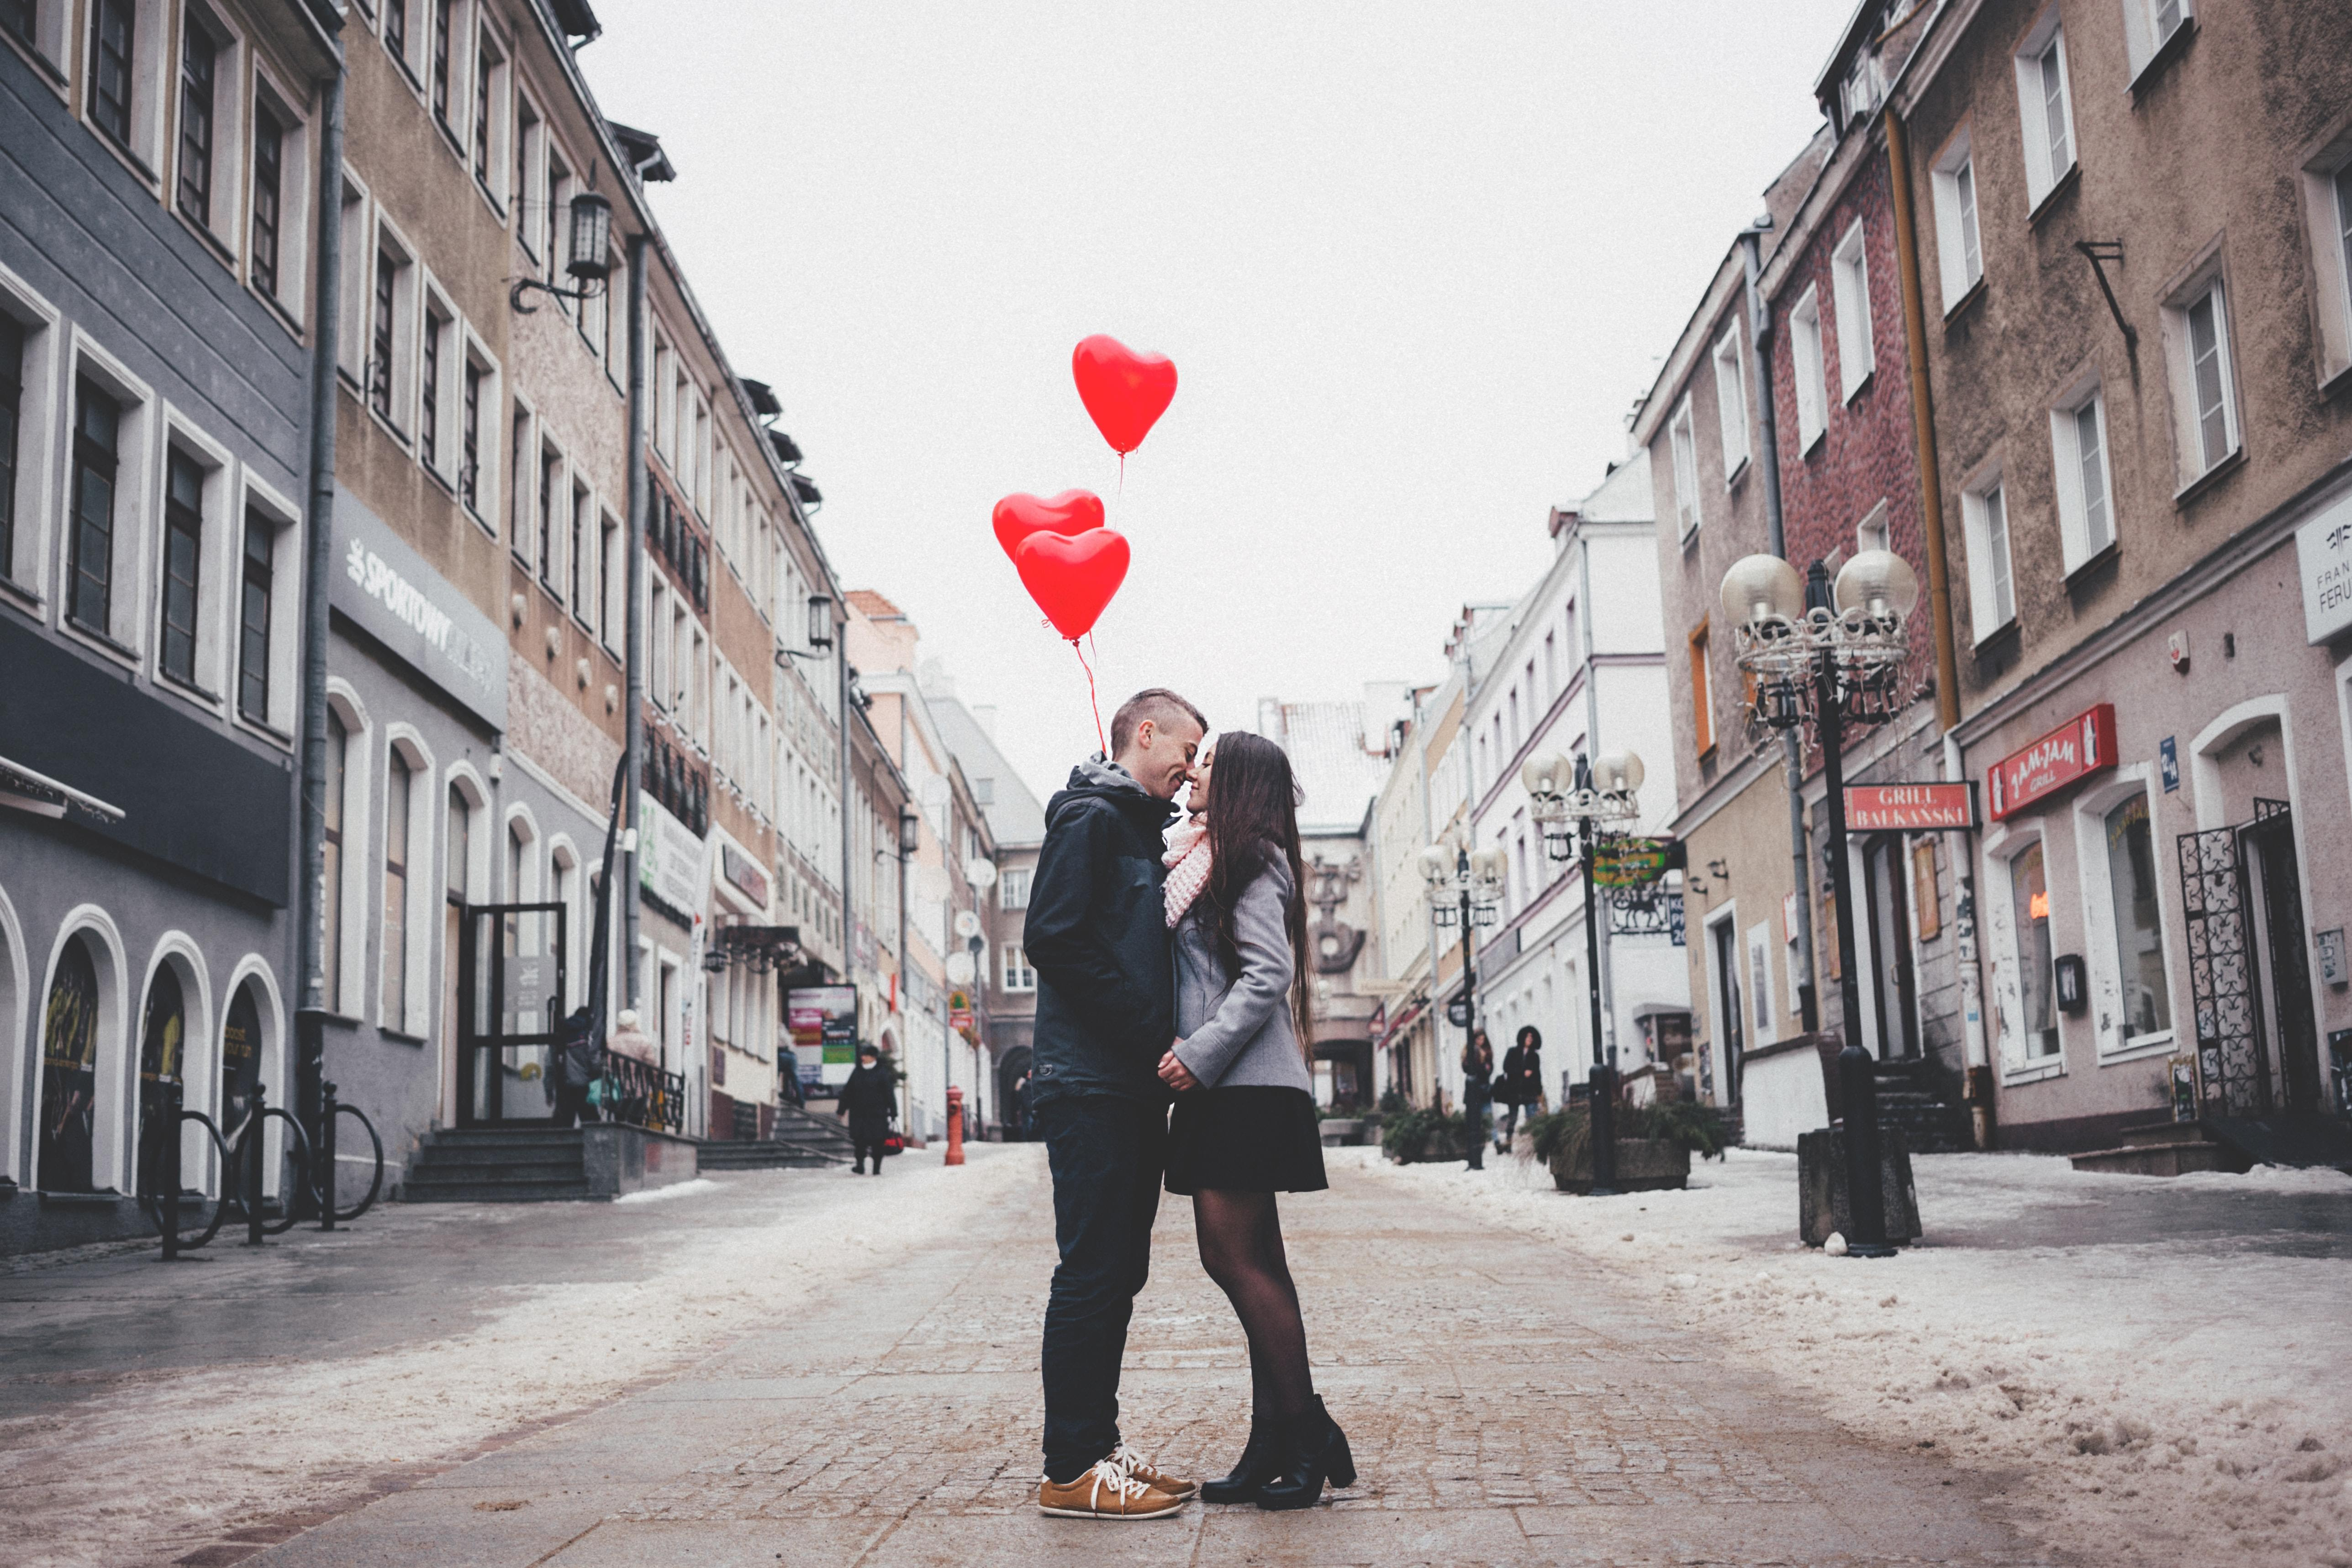 affection-alley-architecture-307791